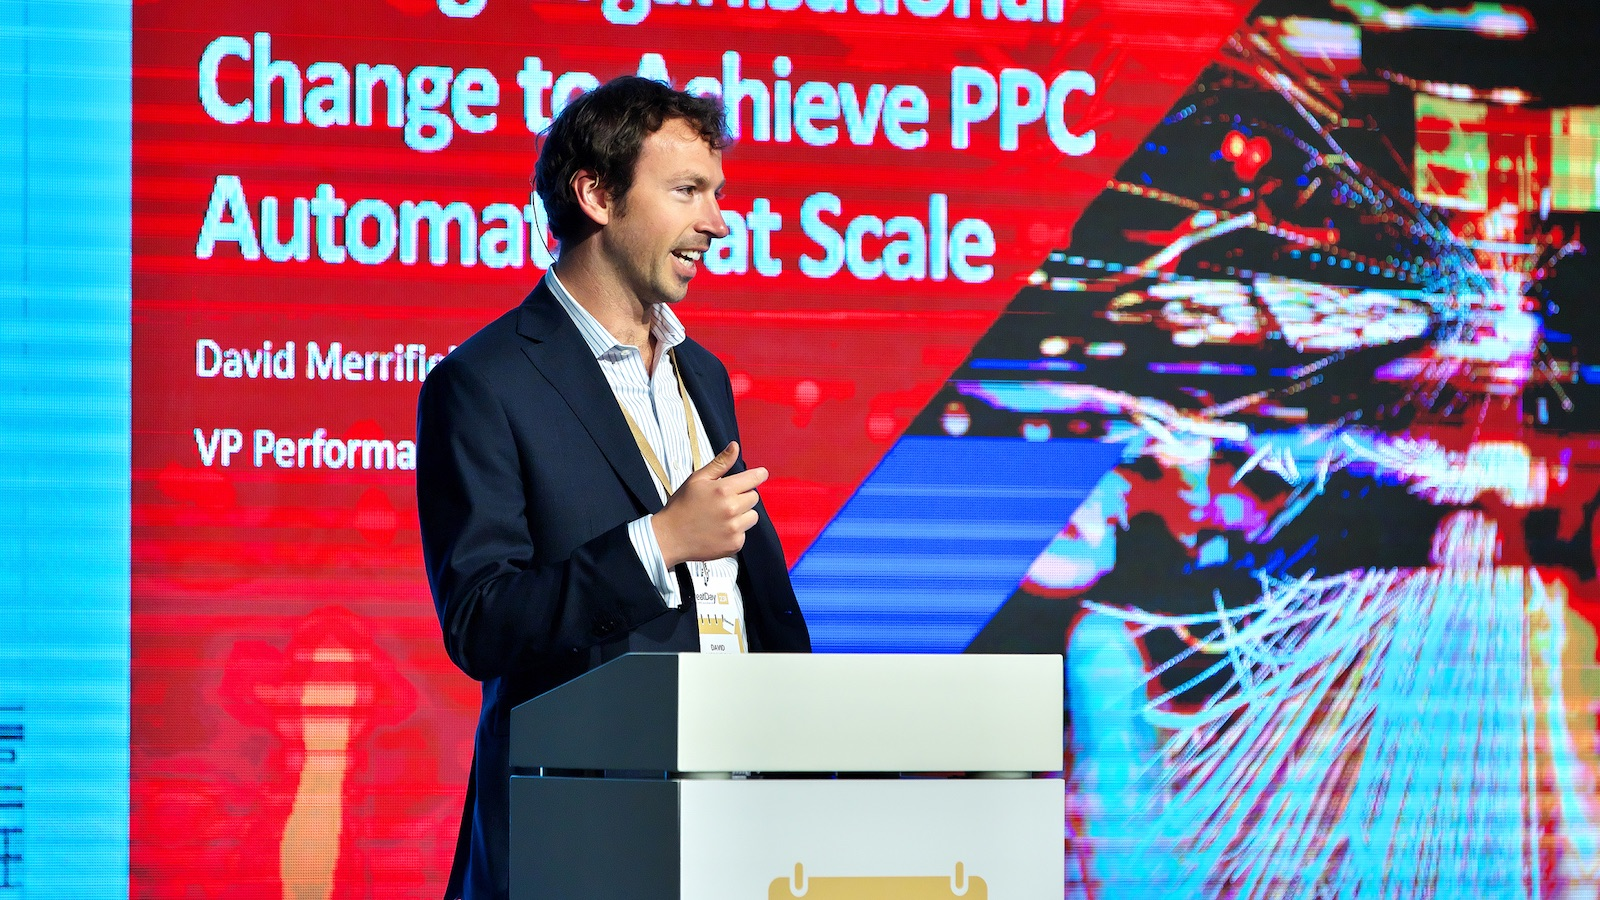 Driving Organisational Change to Achieve PPC Automation at Scale by David Merrifield